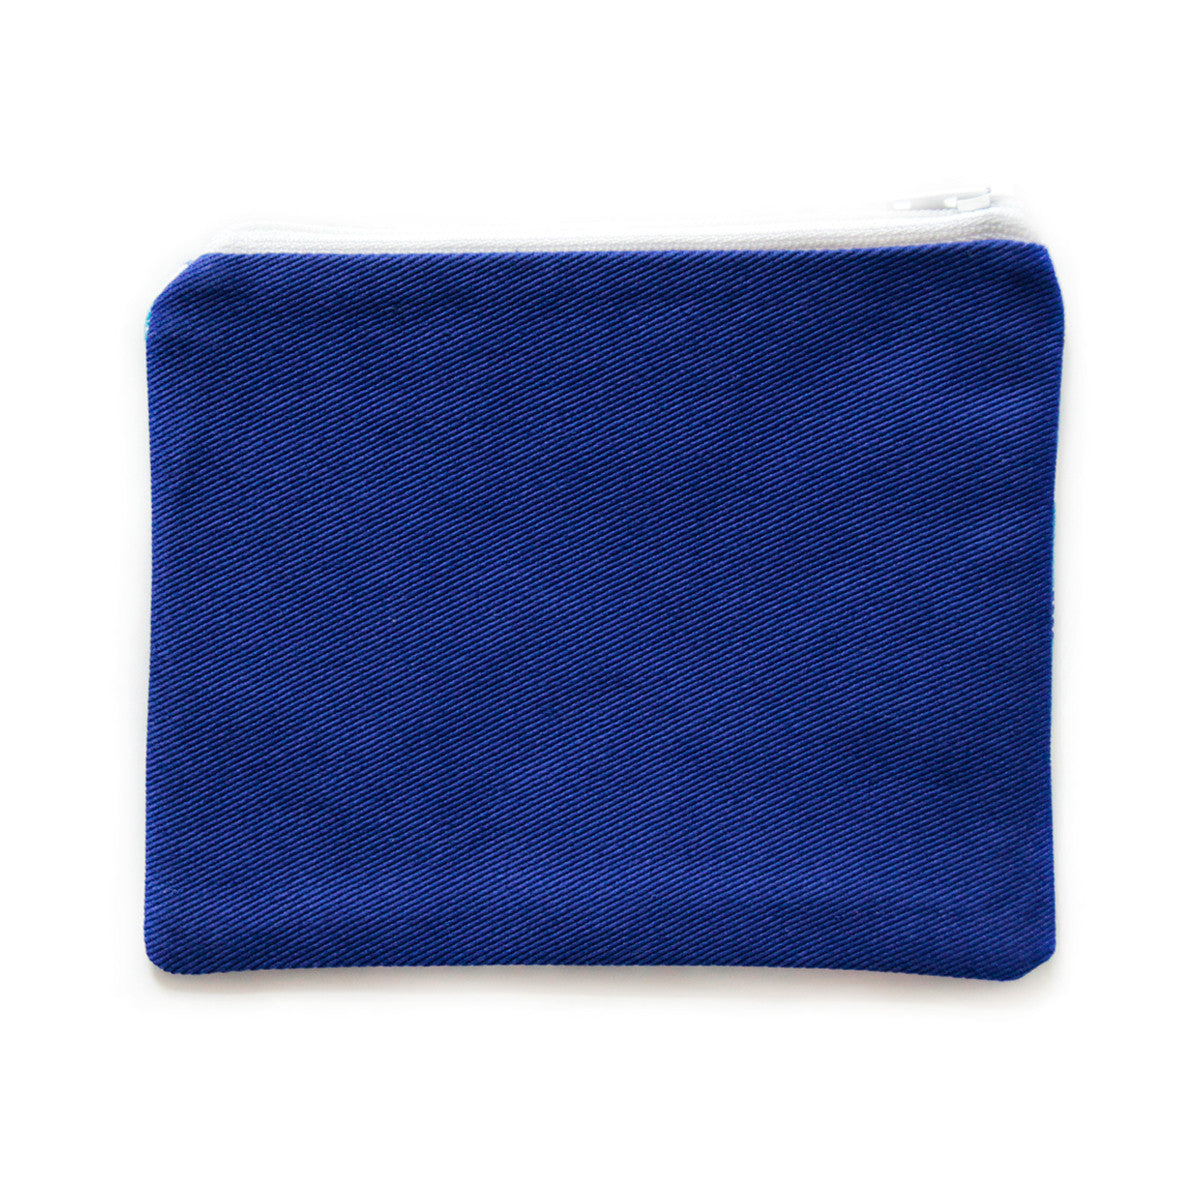 Unity Zip Pouch